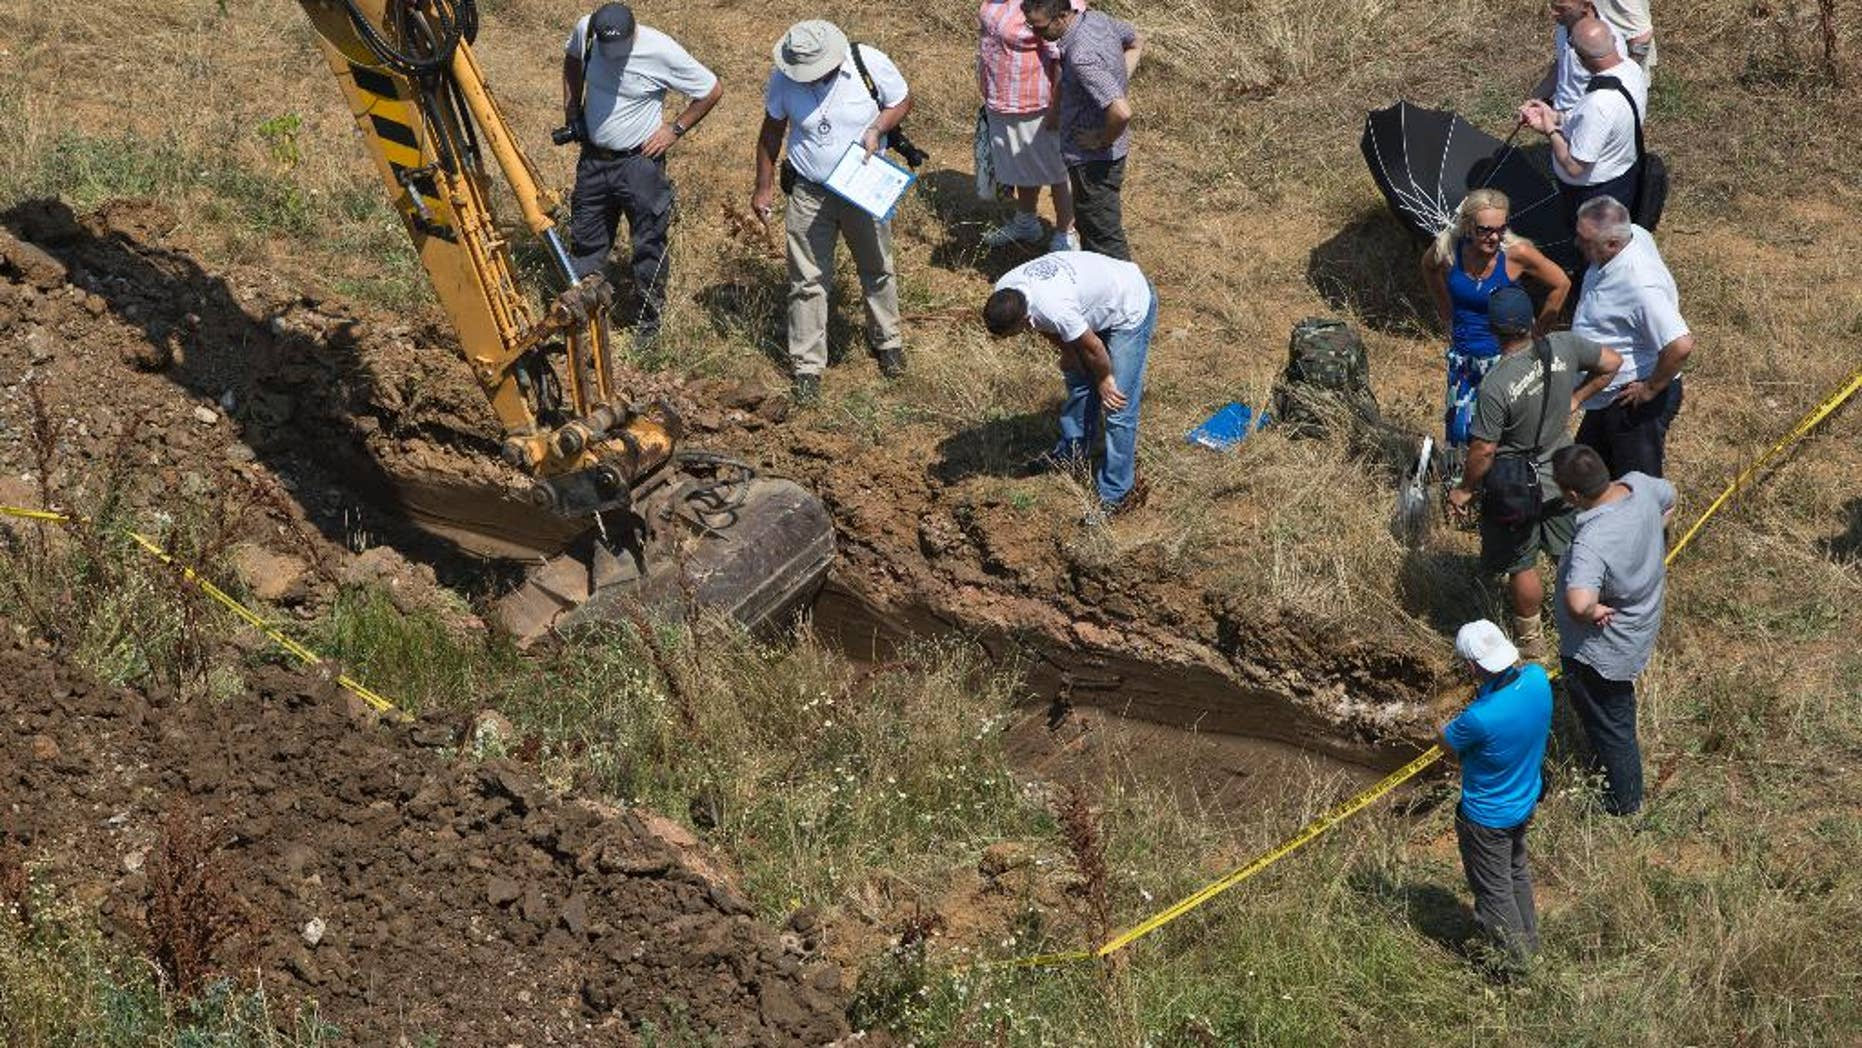 Yellow tape marks the site as an excavator digs a location that is being investigated at Pristina University campus following suspicions of a mass grave of people missing since the 1999 war, in Pristina on Wednesday, July 13, 2016. About 1,650 people remain missing since the end of the war with Serbia in 1999. (AP Photo/Visar Kryeziu)